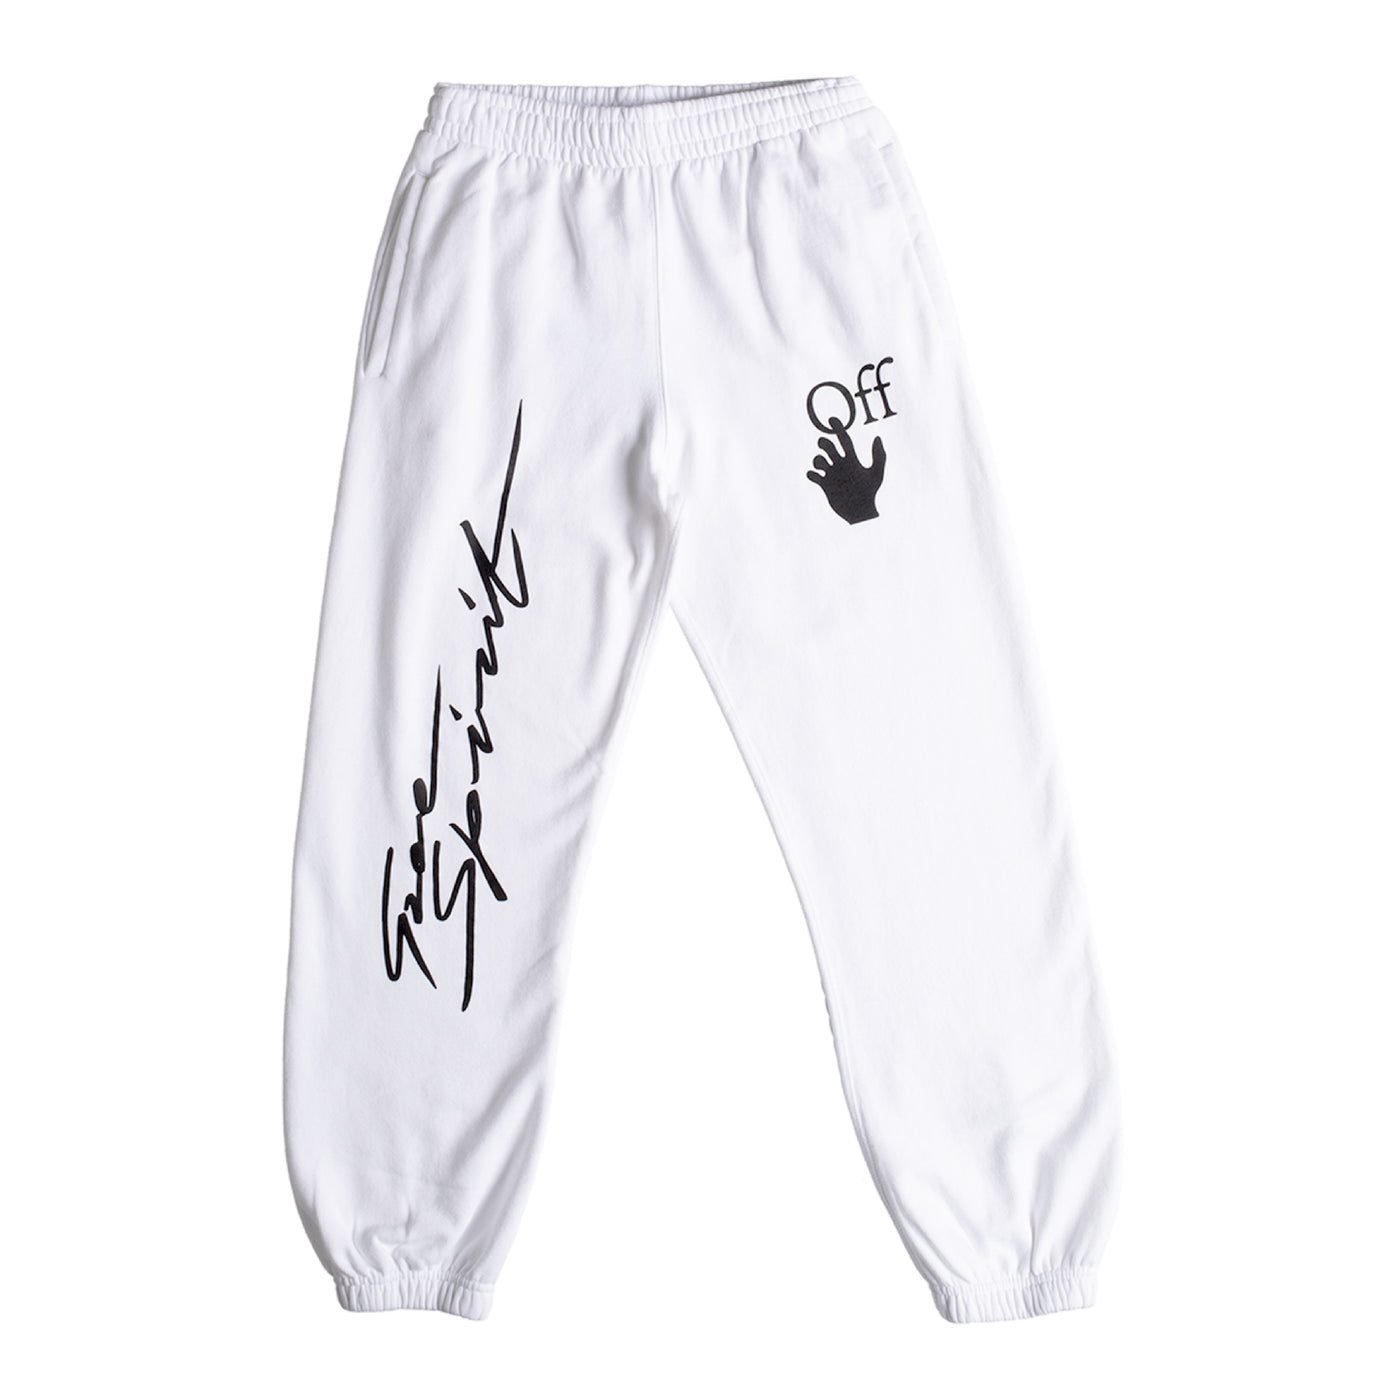 Load image into Gallery viewer, OFF-WHITE PENCIL ARCH SHORTEN SWEATPANT WHITE